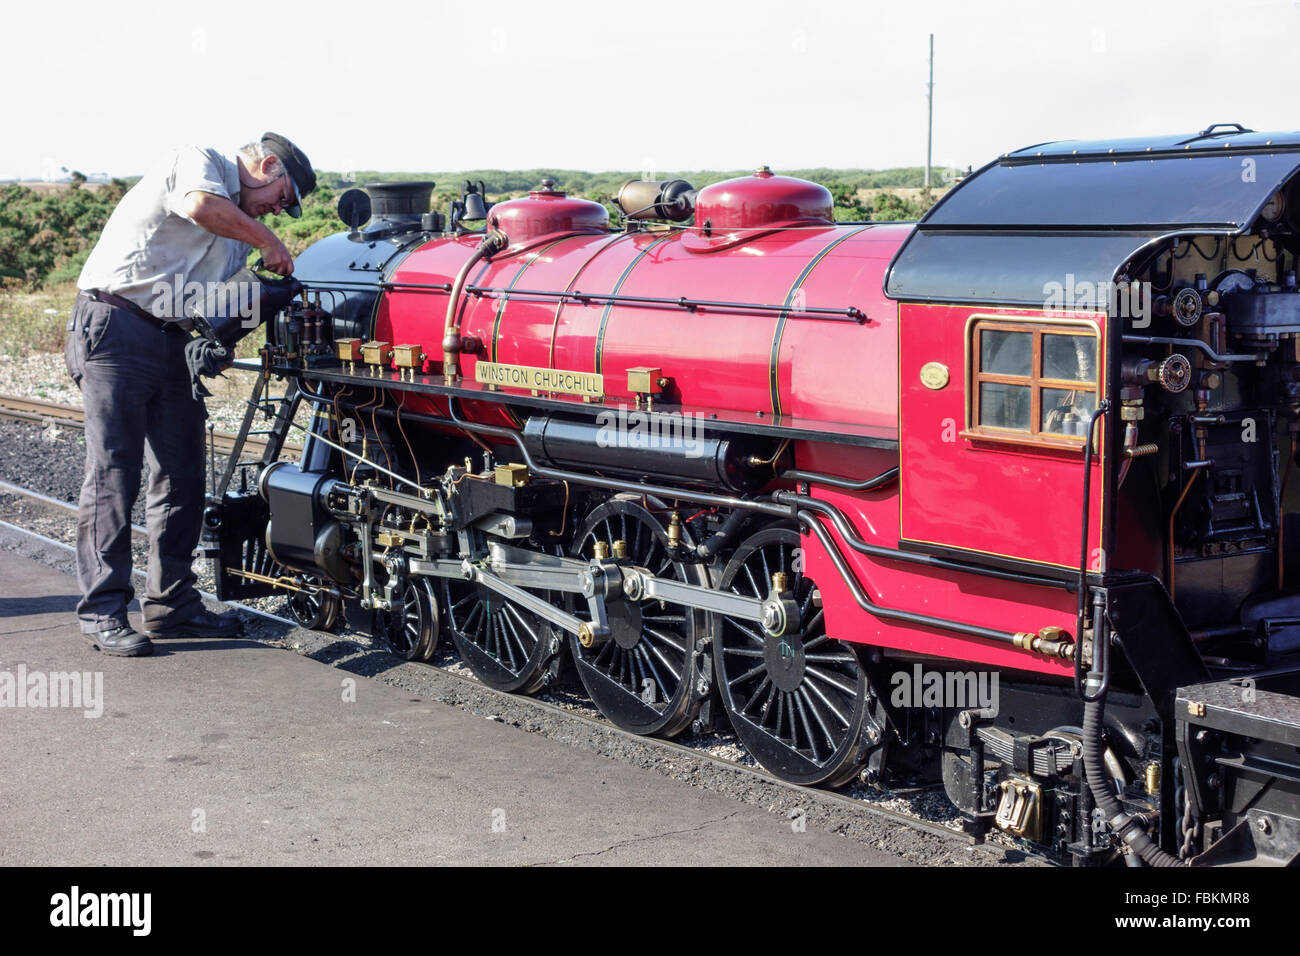 England, Kent, Dungeness. The driver tops up the oil levels in the miniature steam locomotive, 'Winston Churchill'. Stock Photo